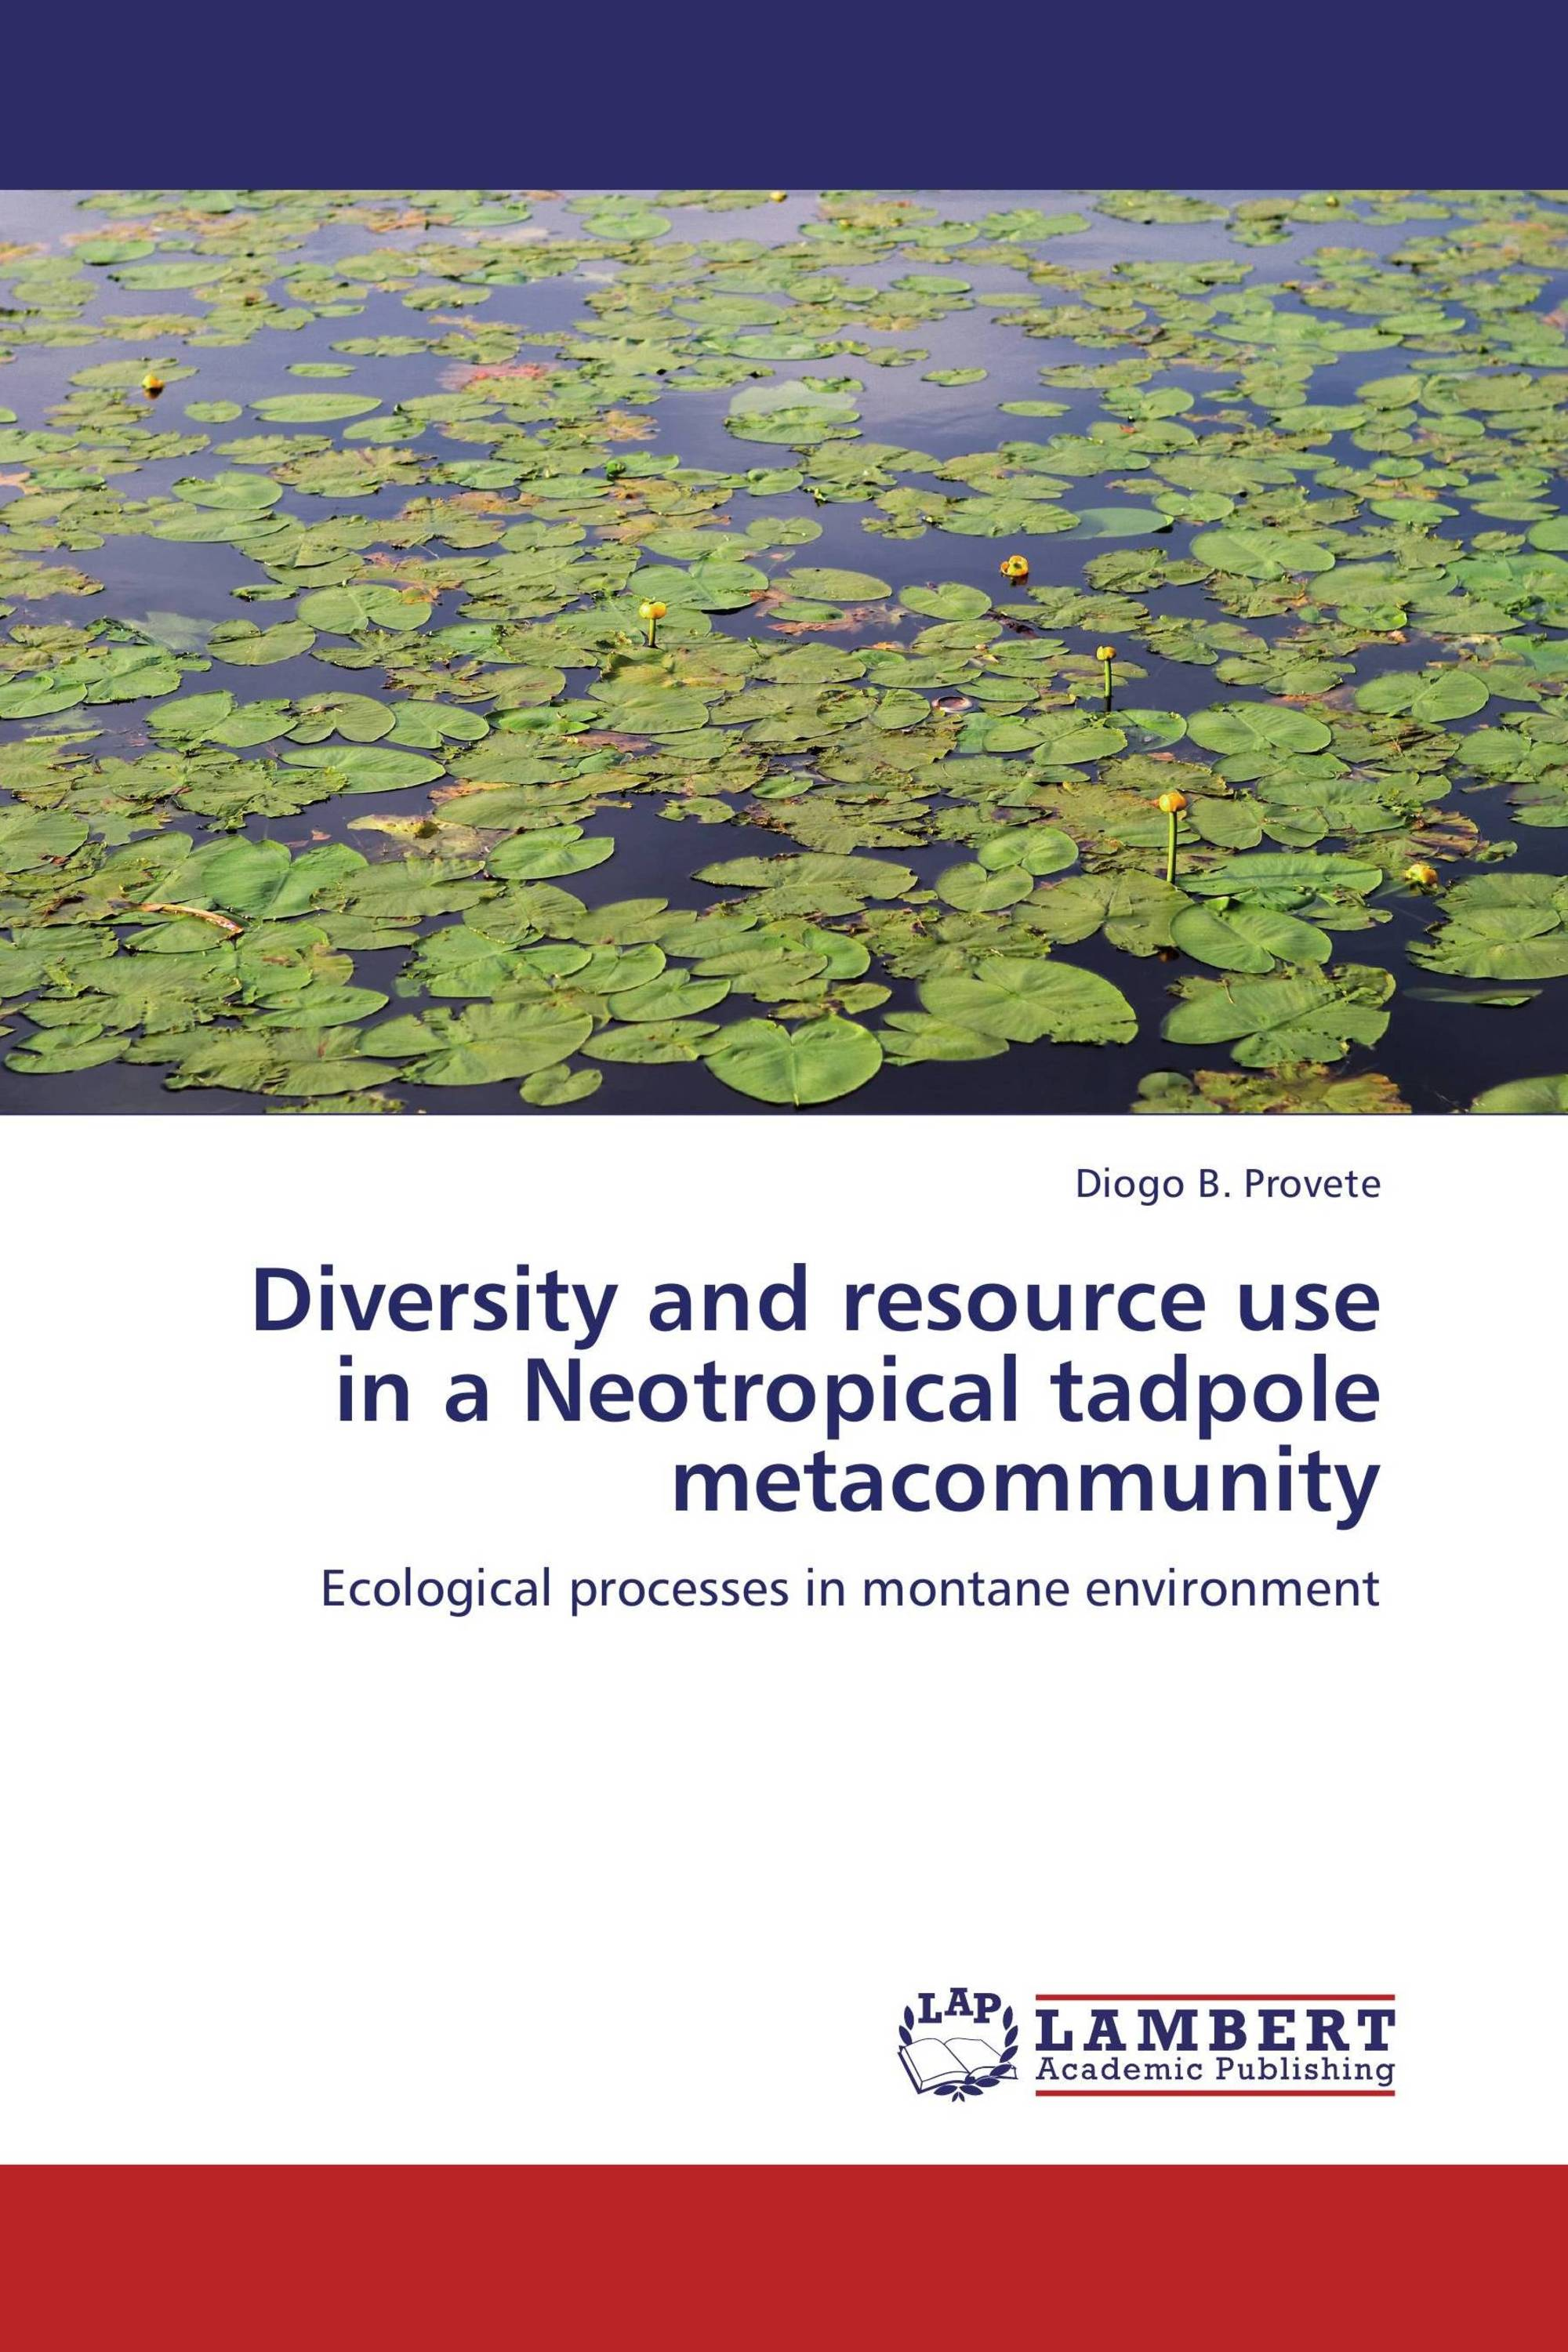 Diversity and resource use in a Neotropical tadpole metacommunity